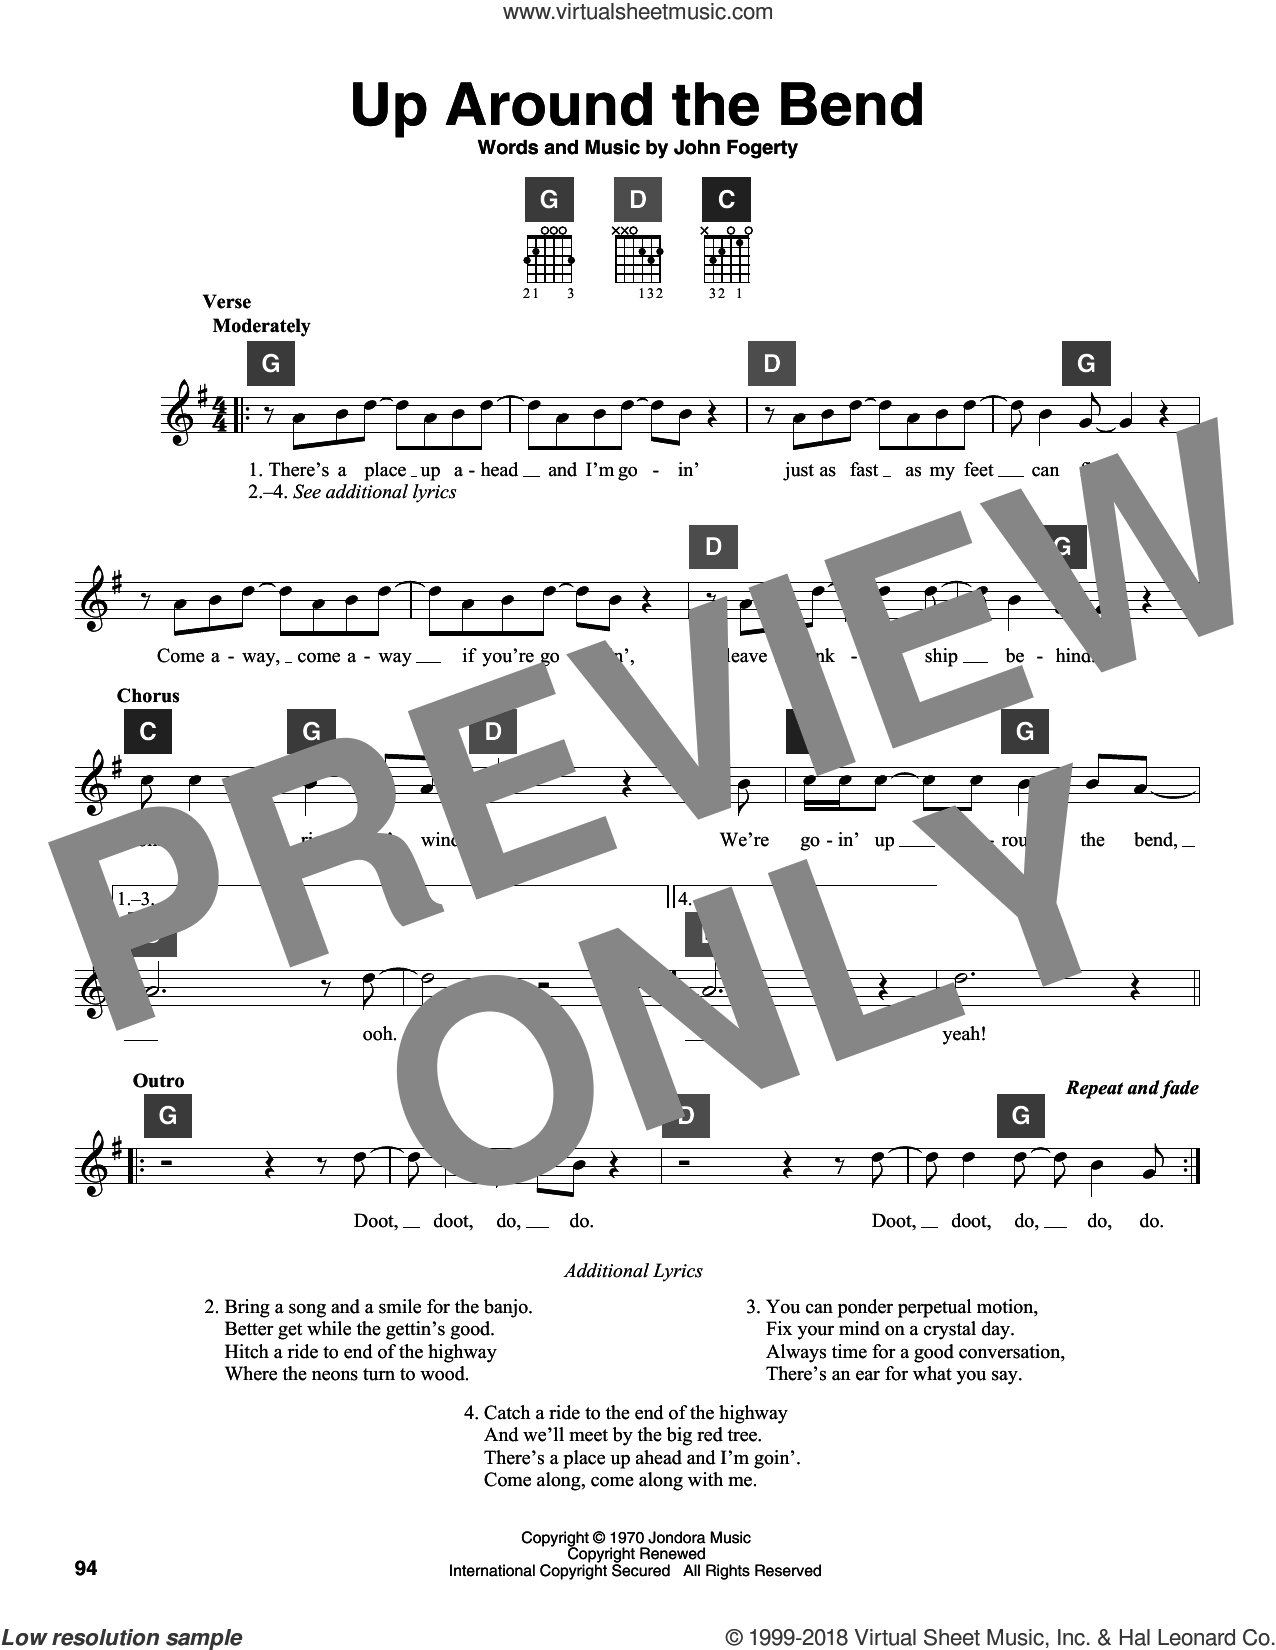 Up Around The Bend sheet music for guitar solo (ChordBuddy system) by Creedence Clearwater Revival and John Fogerty, intermediate guitar (ChordBuddy system). Score Image Preview.